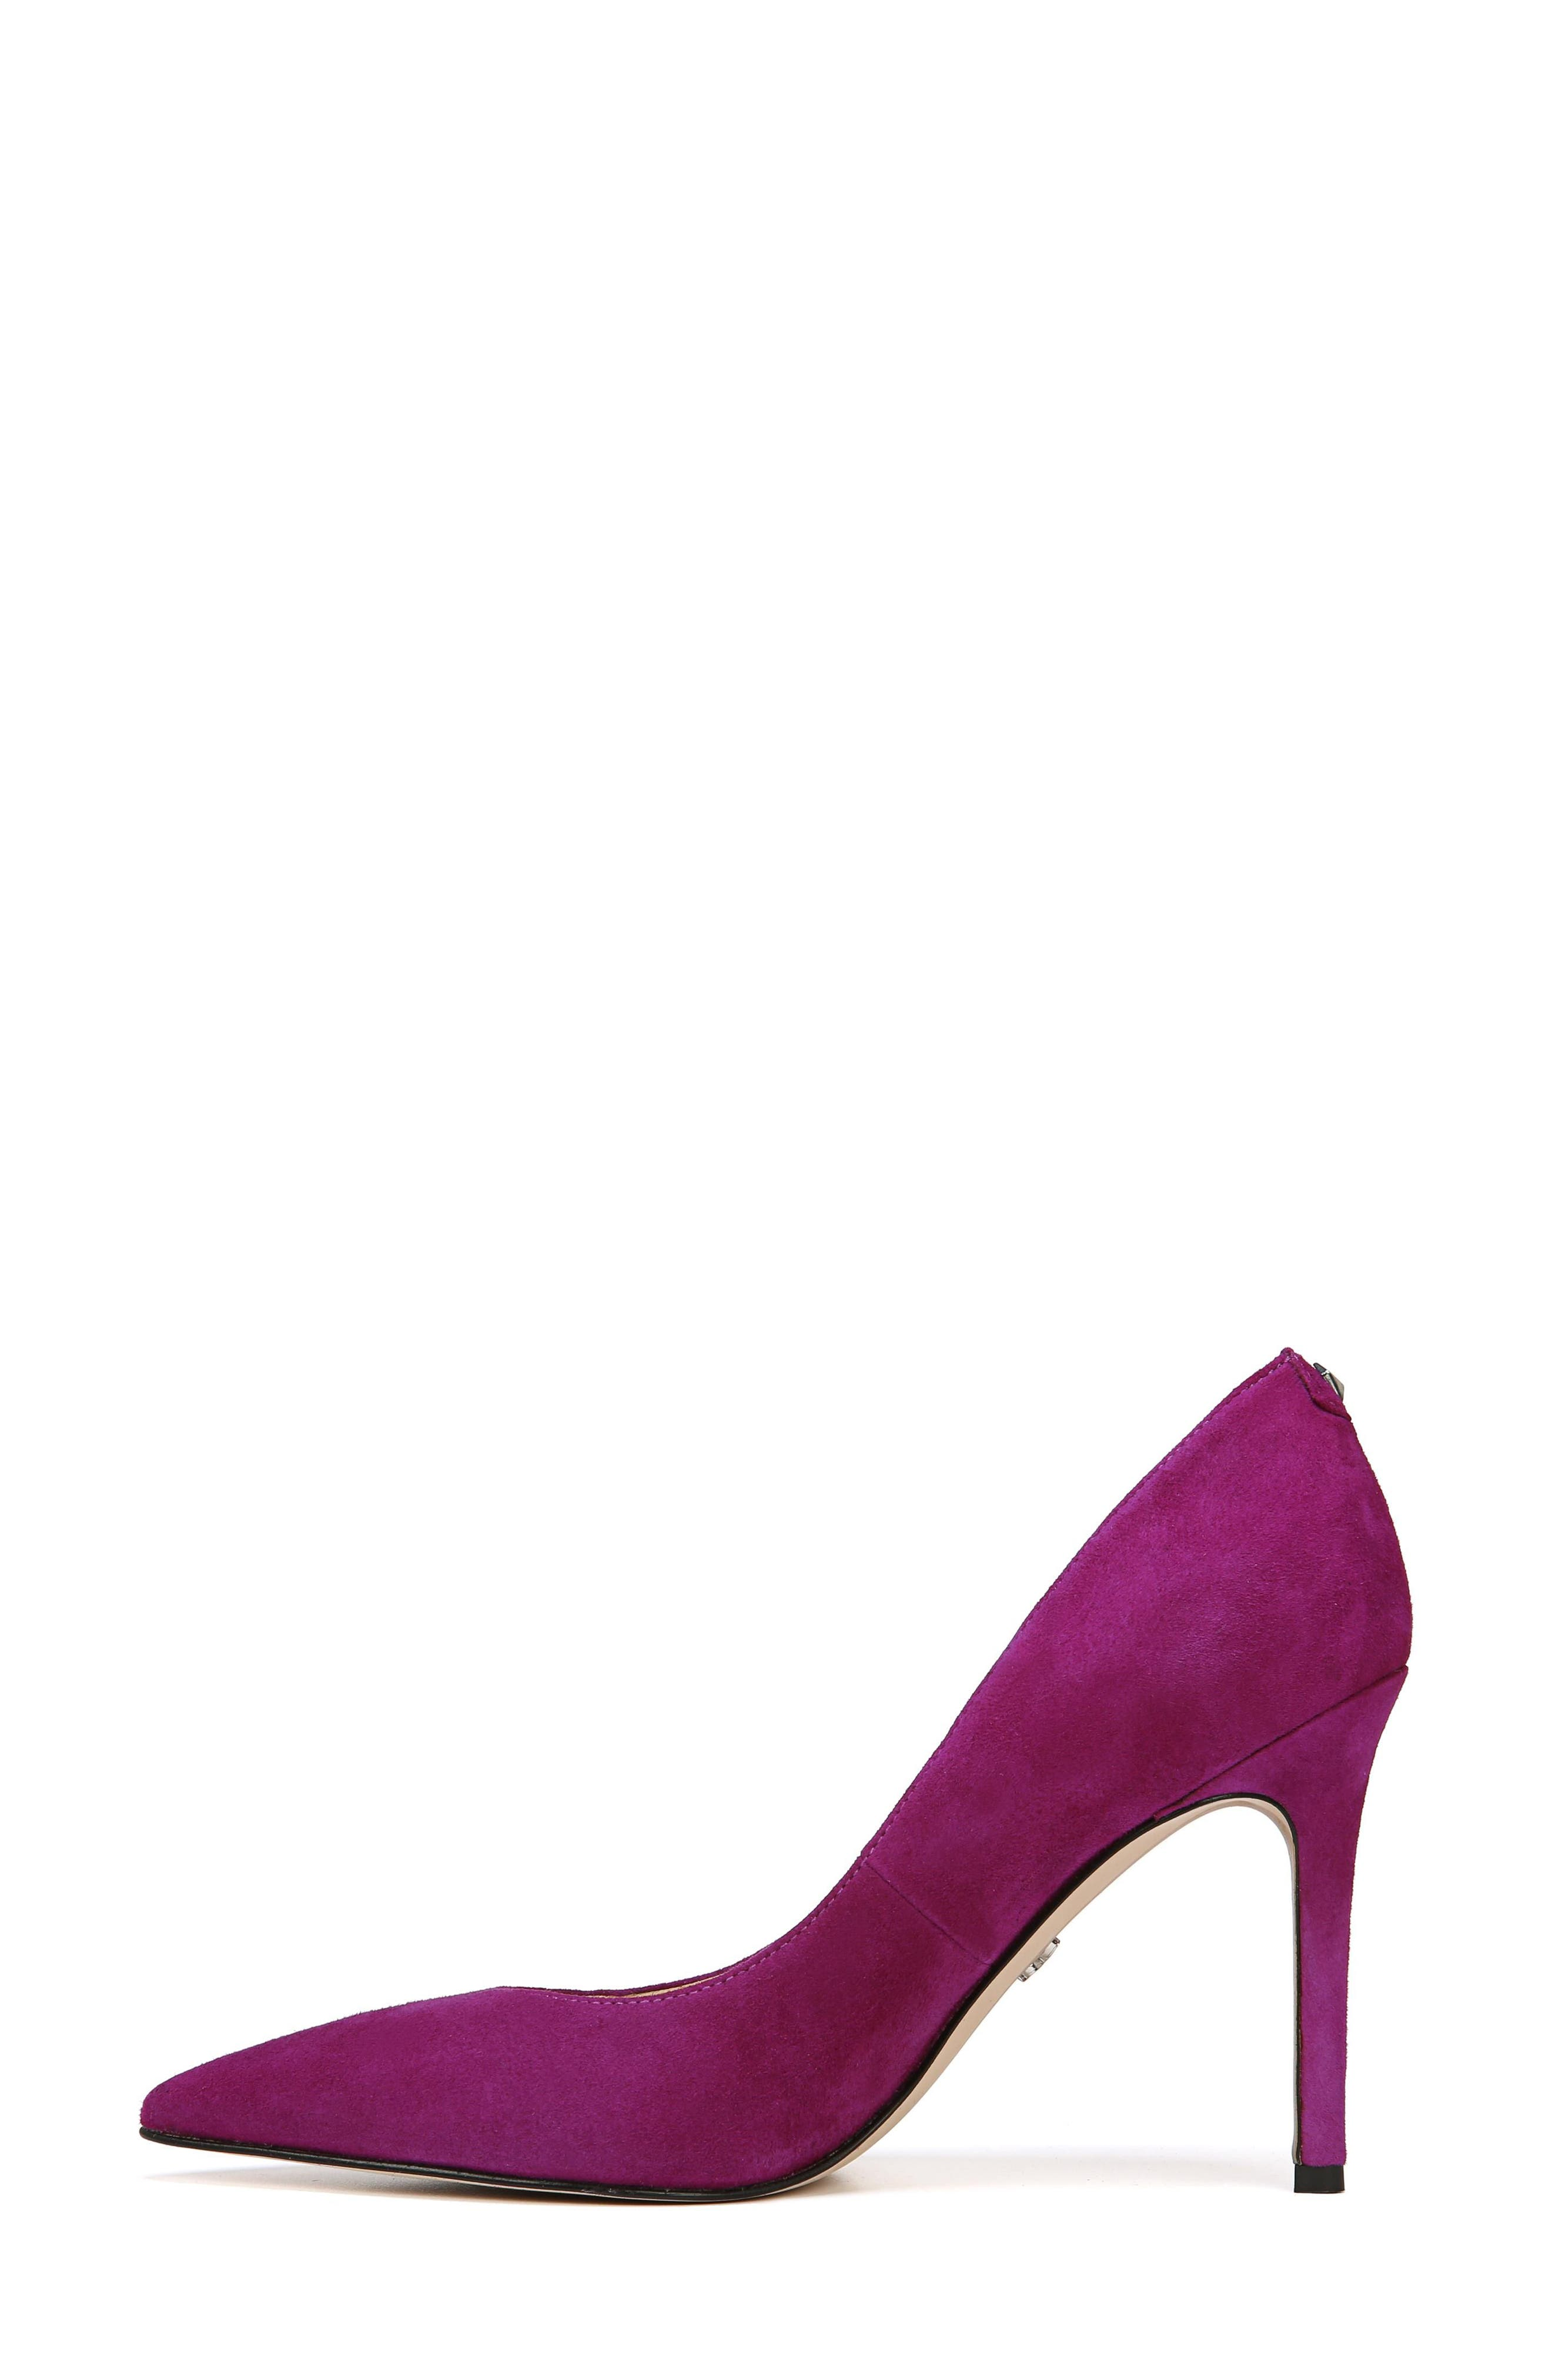 Hazel Pointy Toe Pump,                             Alternate thumbnail 2, color,                             Purple Plum Suede